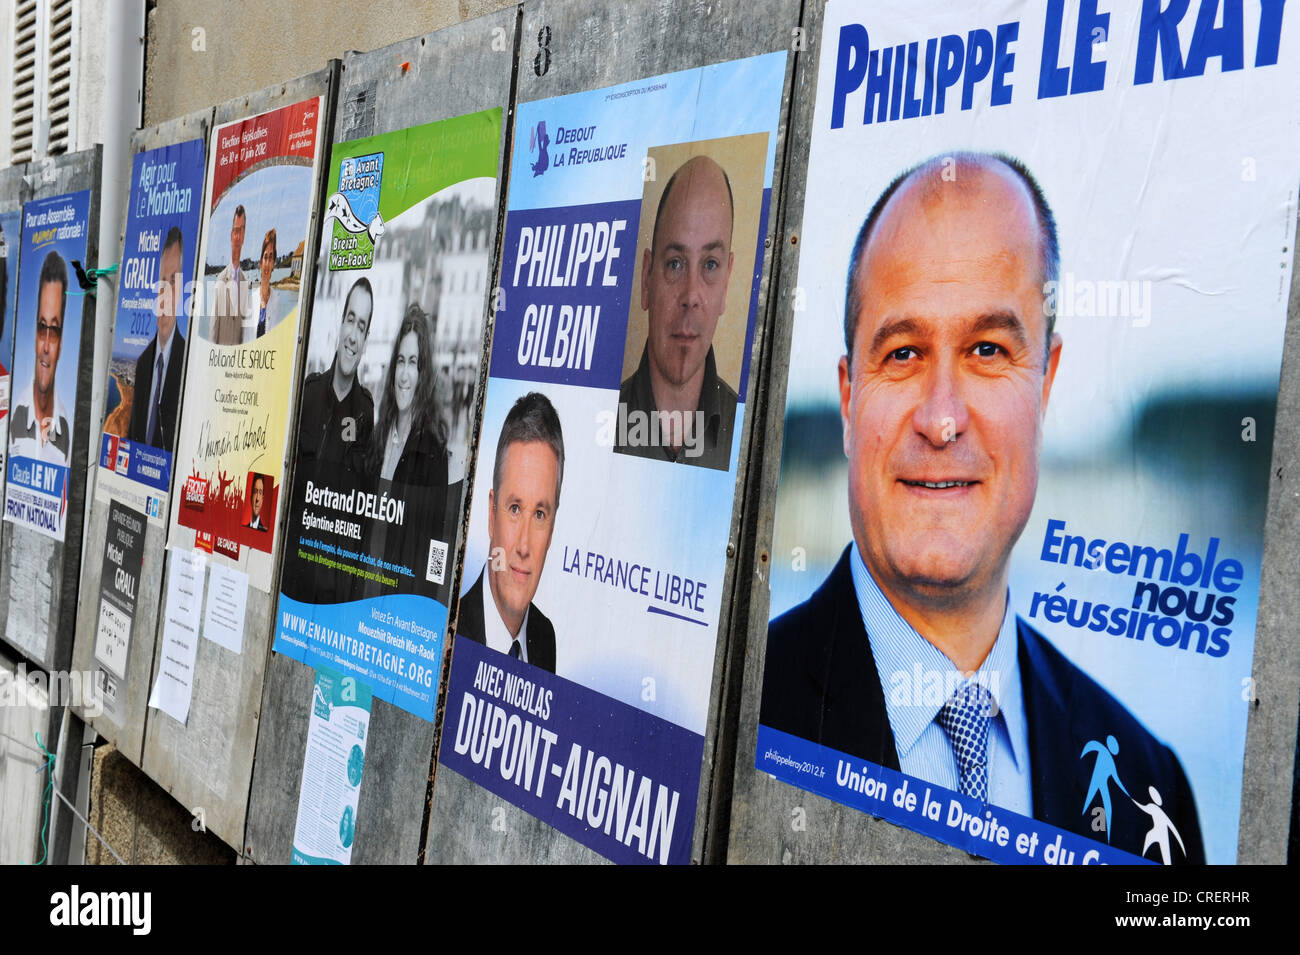 Political candidates posters in Brittany France - Stock Image